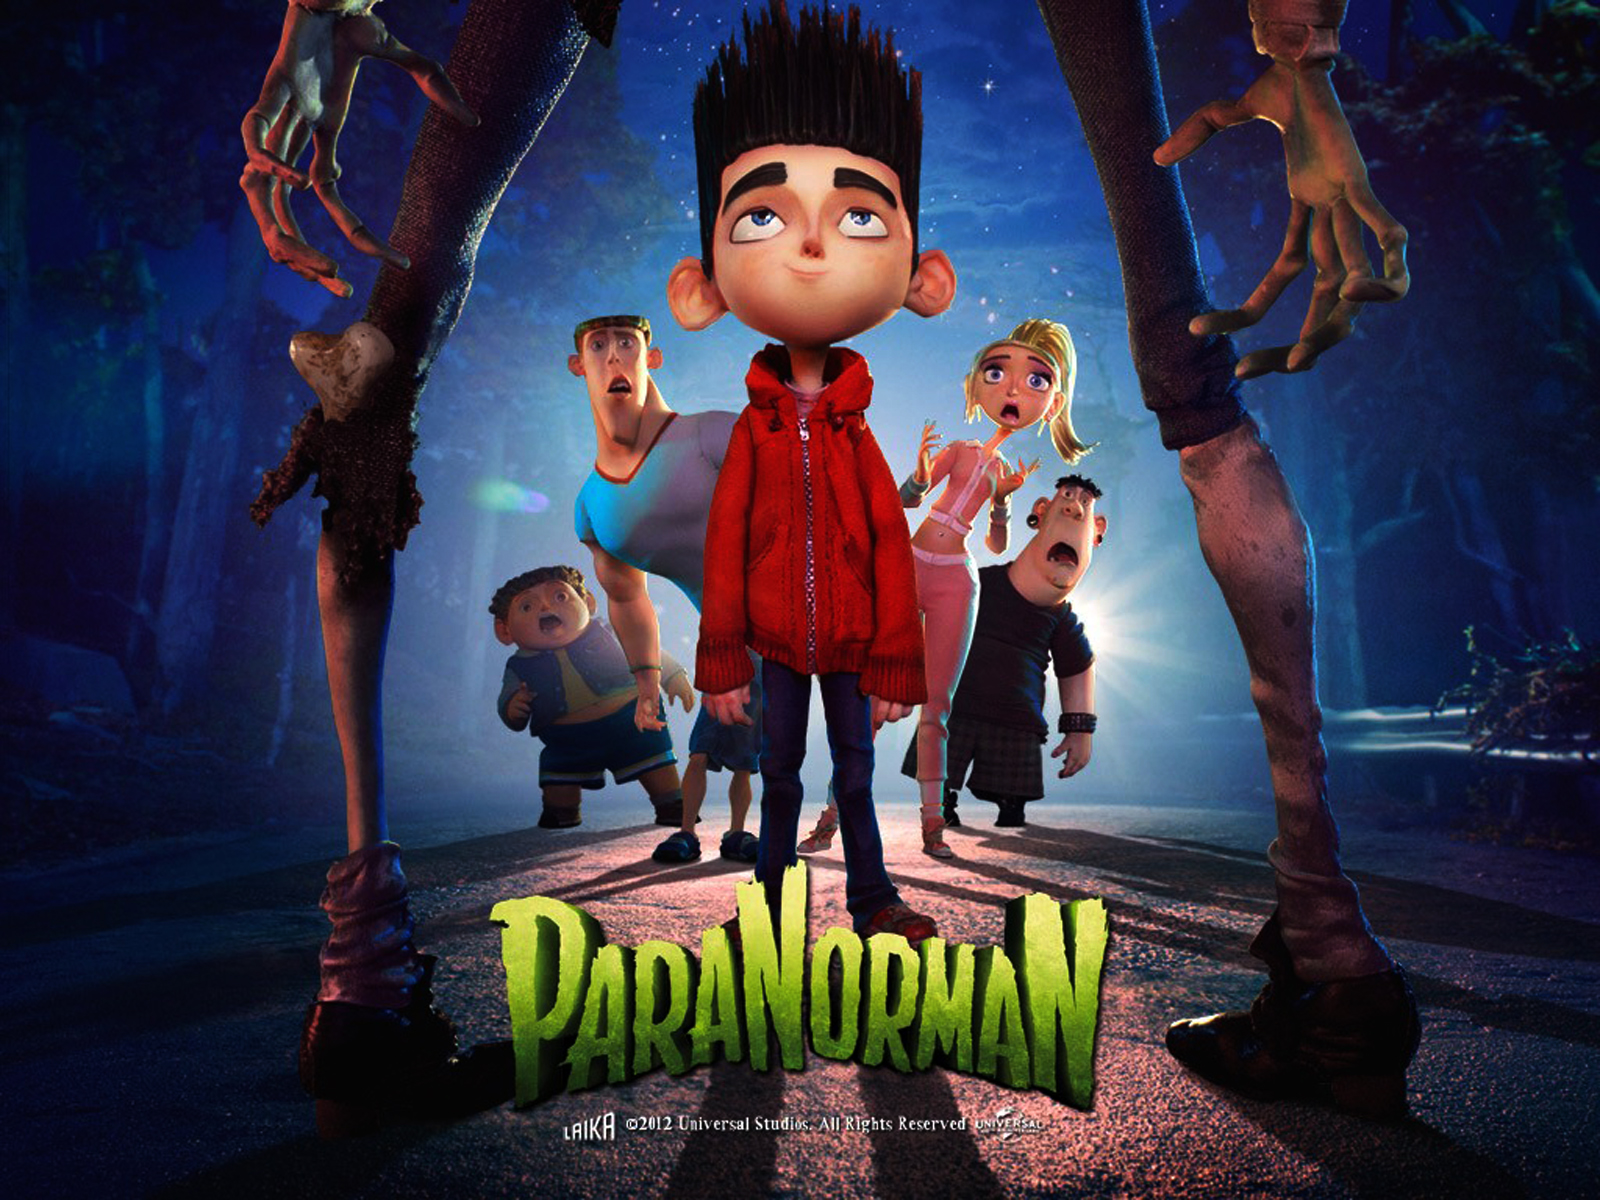 ParaNorman Animation Movie HD Wallpapers:Image to Wallpaper